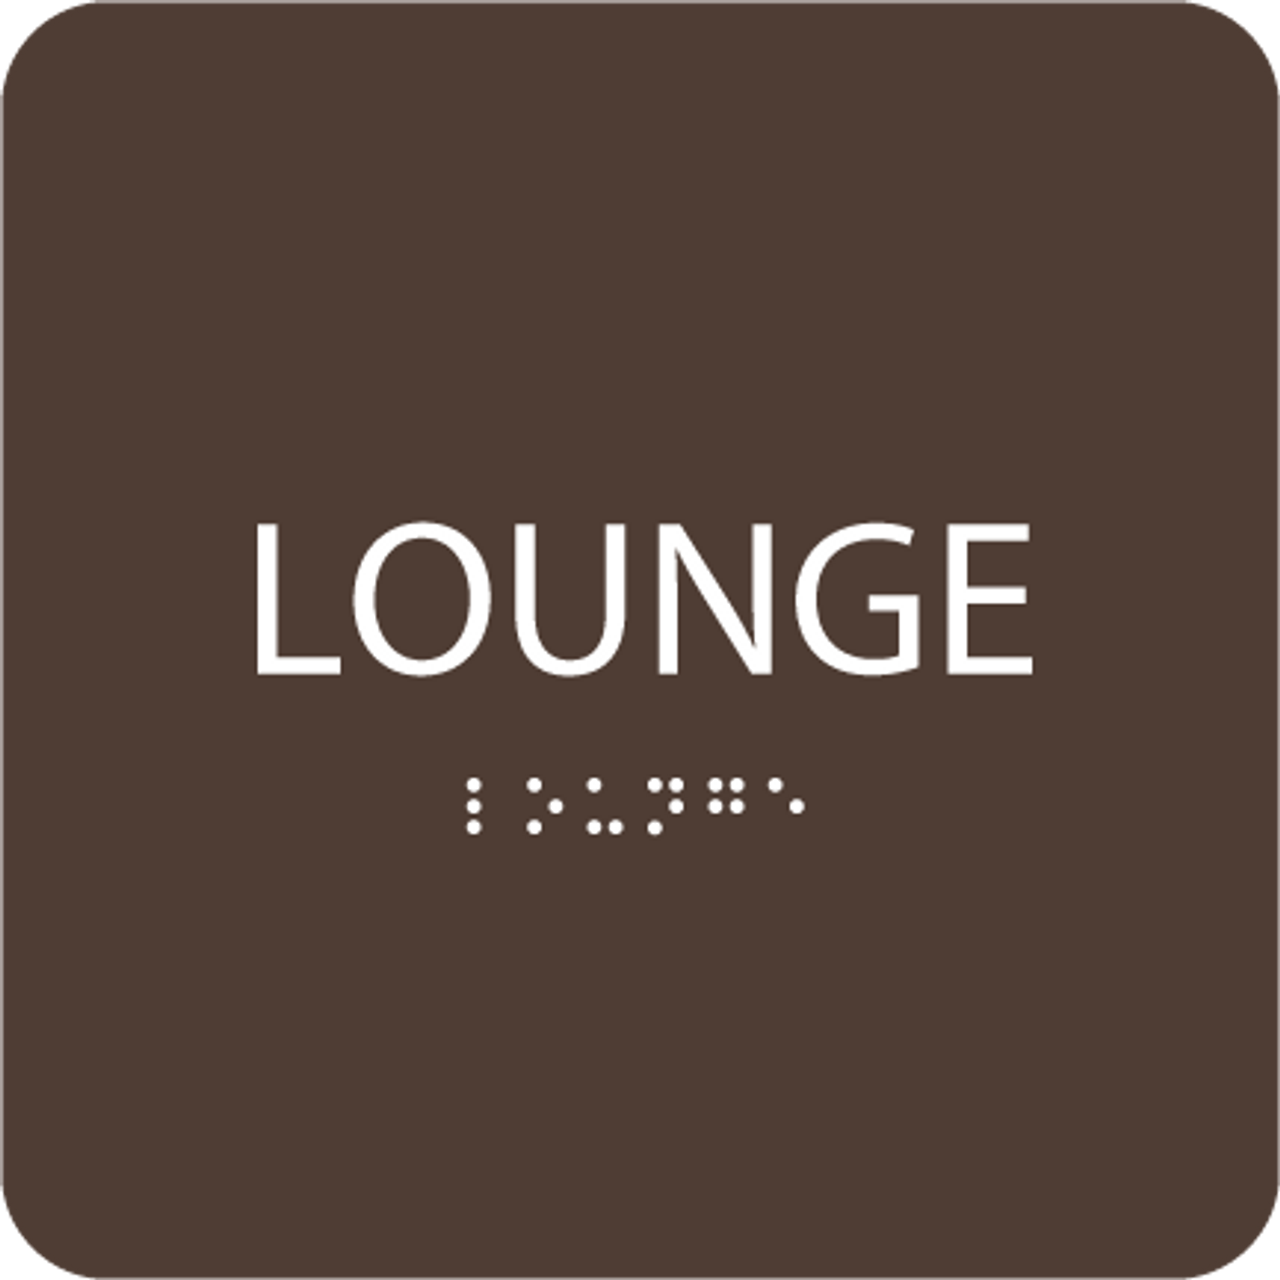 Dark Brown Lounge ADA Sign